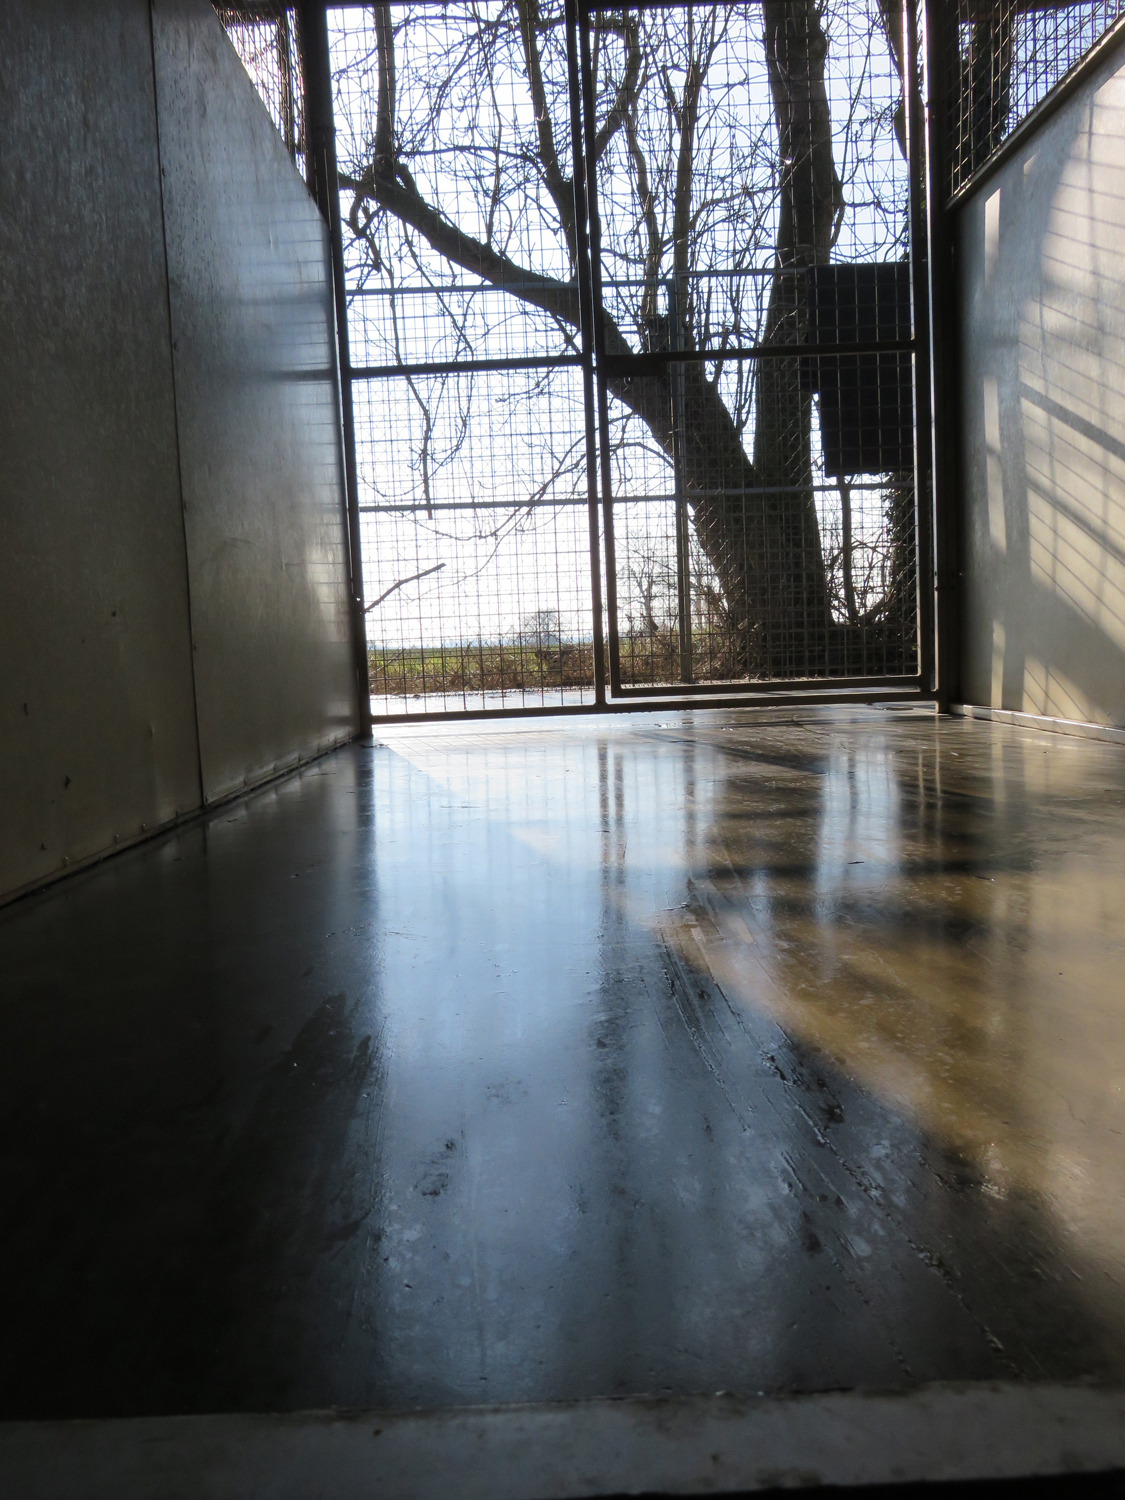 PHOTO: View from the exterior run of one of our kennels